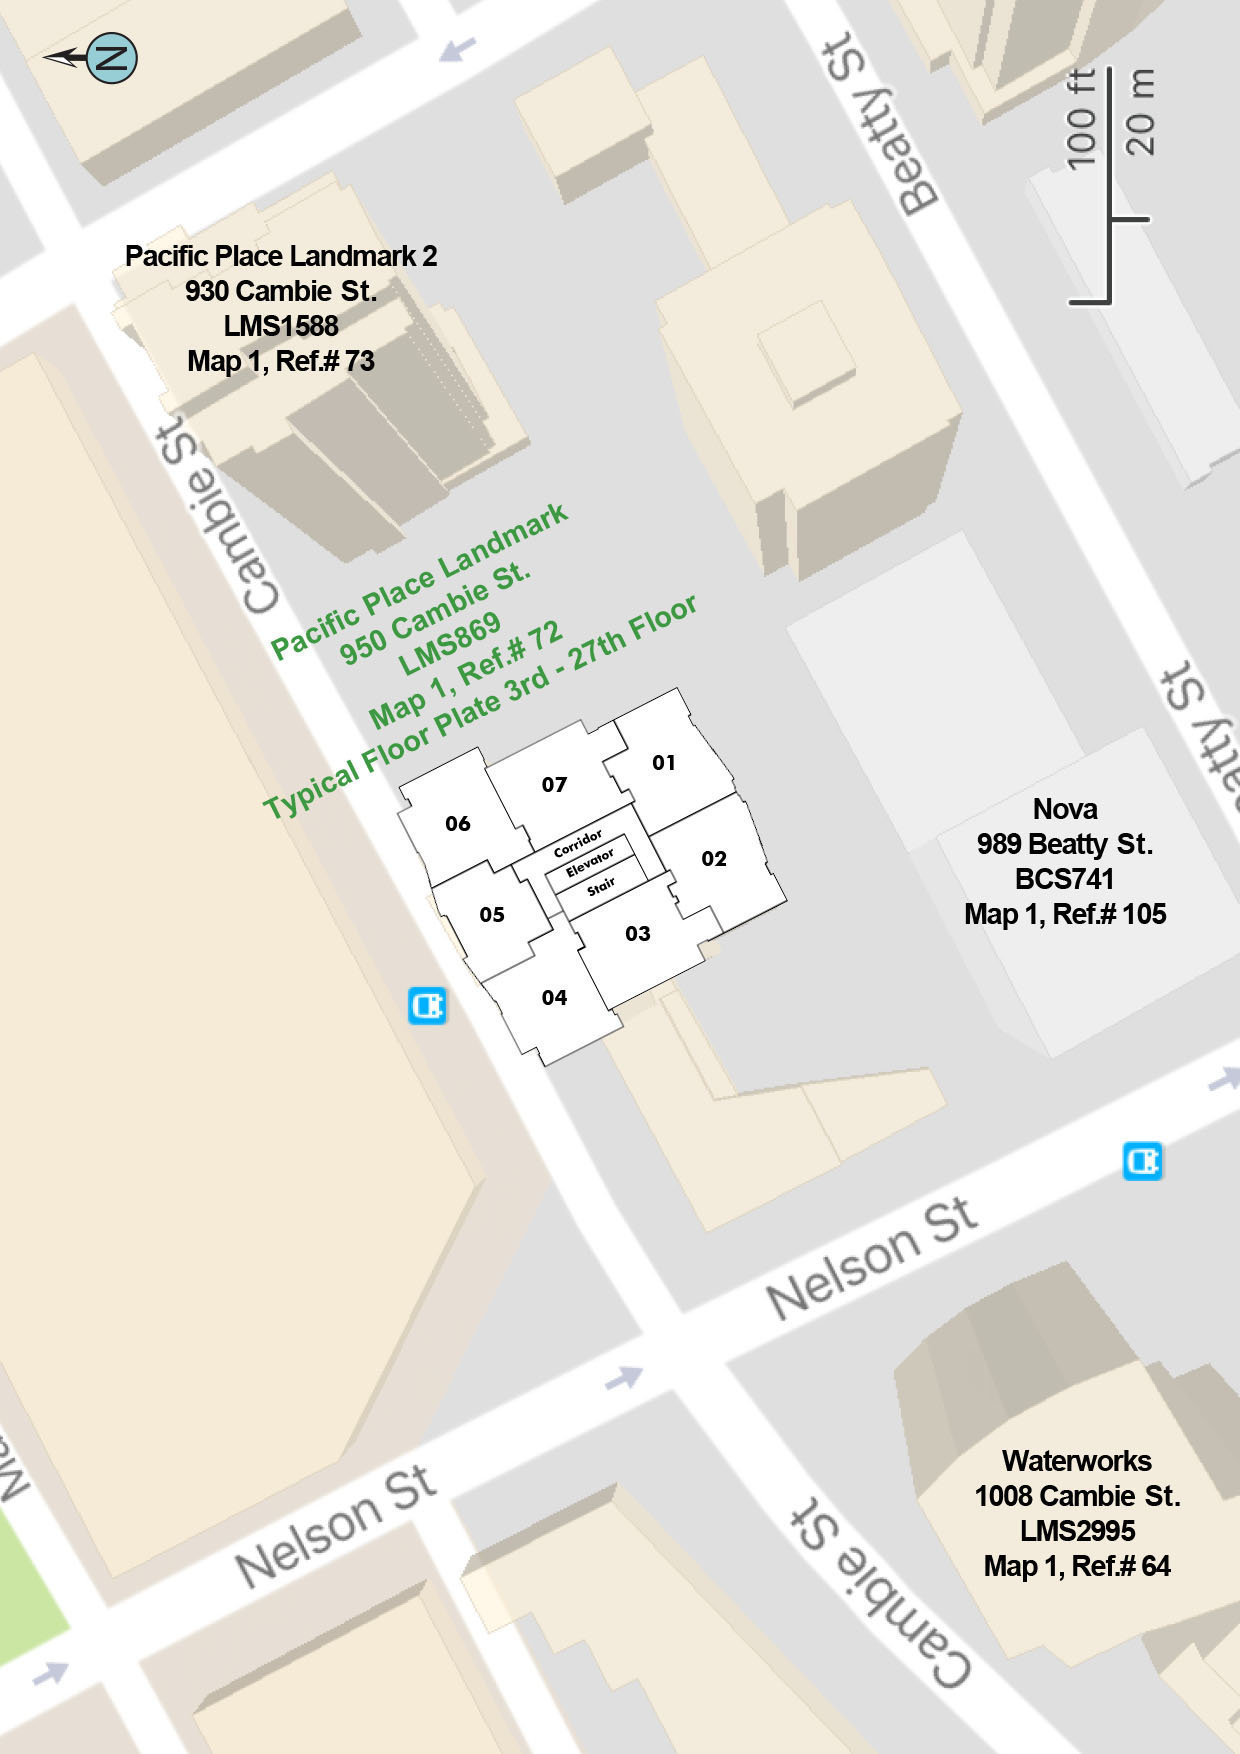 Pacific Place Landmark 1 Area Map